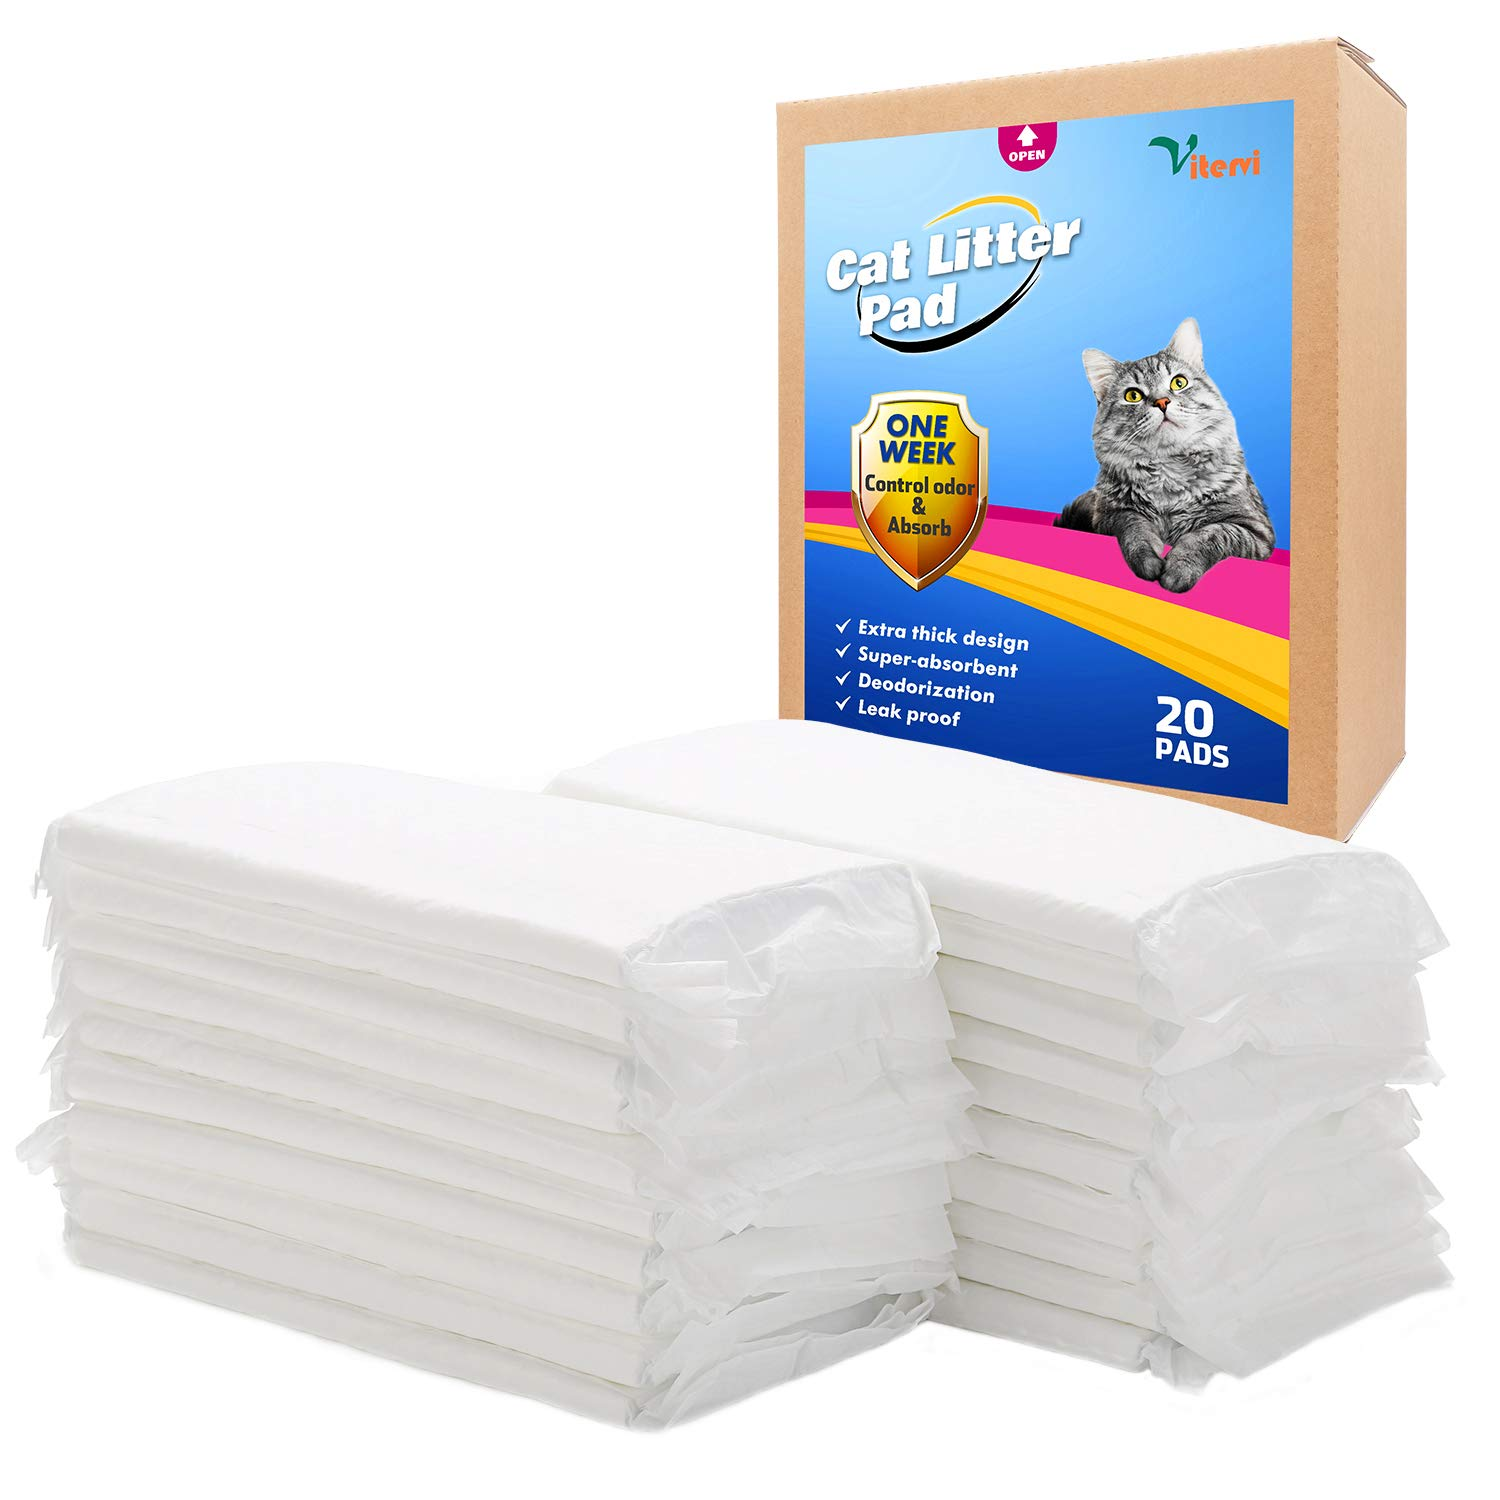 Vitervi Cat Litter Pad, 20 Count Cat Pad Refills for Breeze Litter System 16.9''x11.4'' by Vitervi